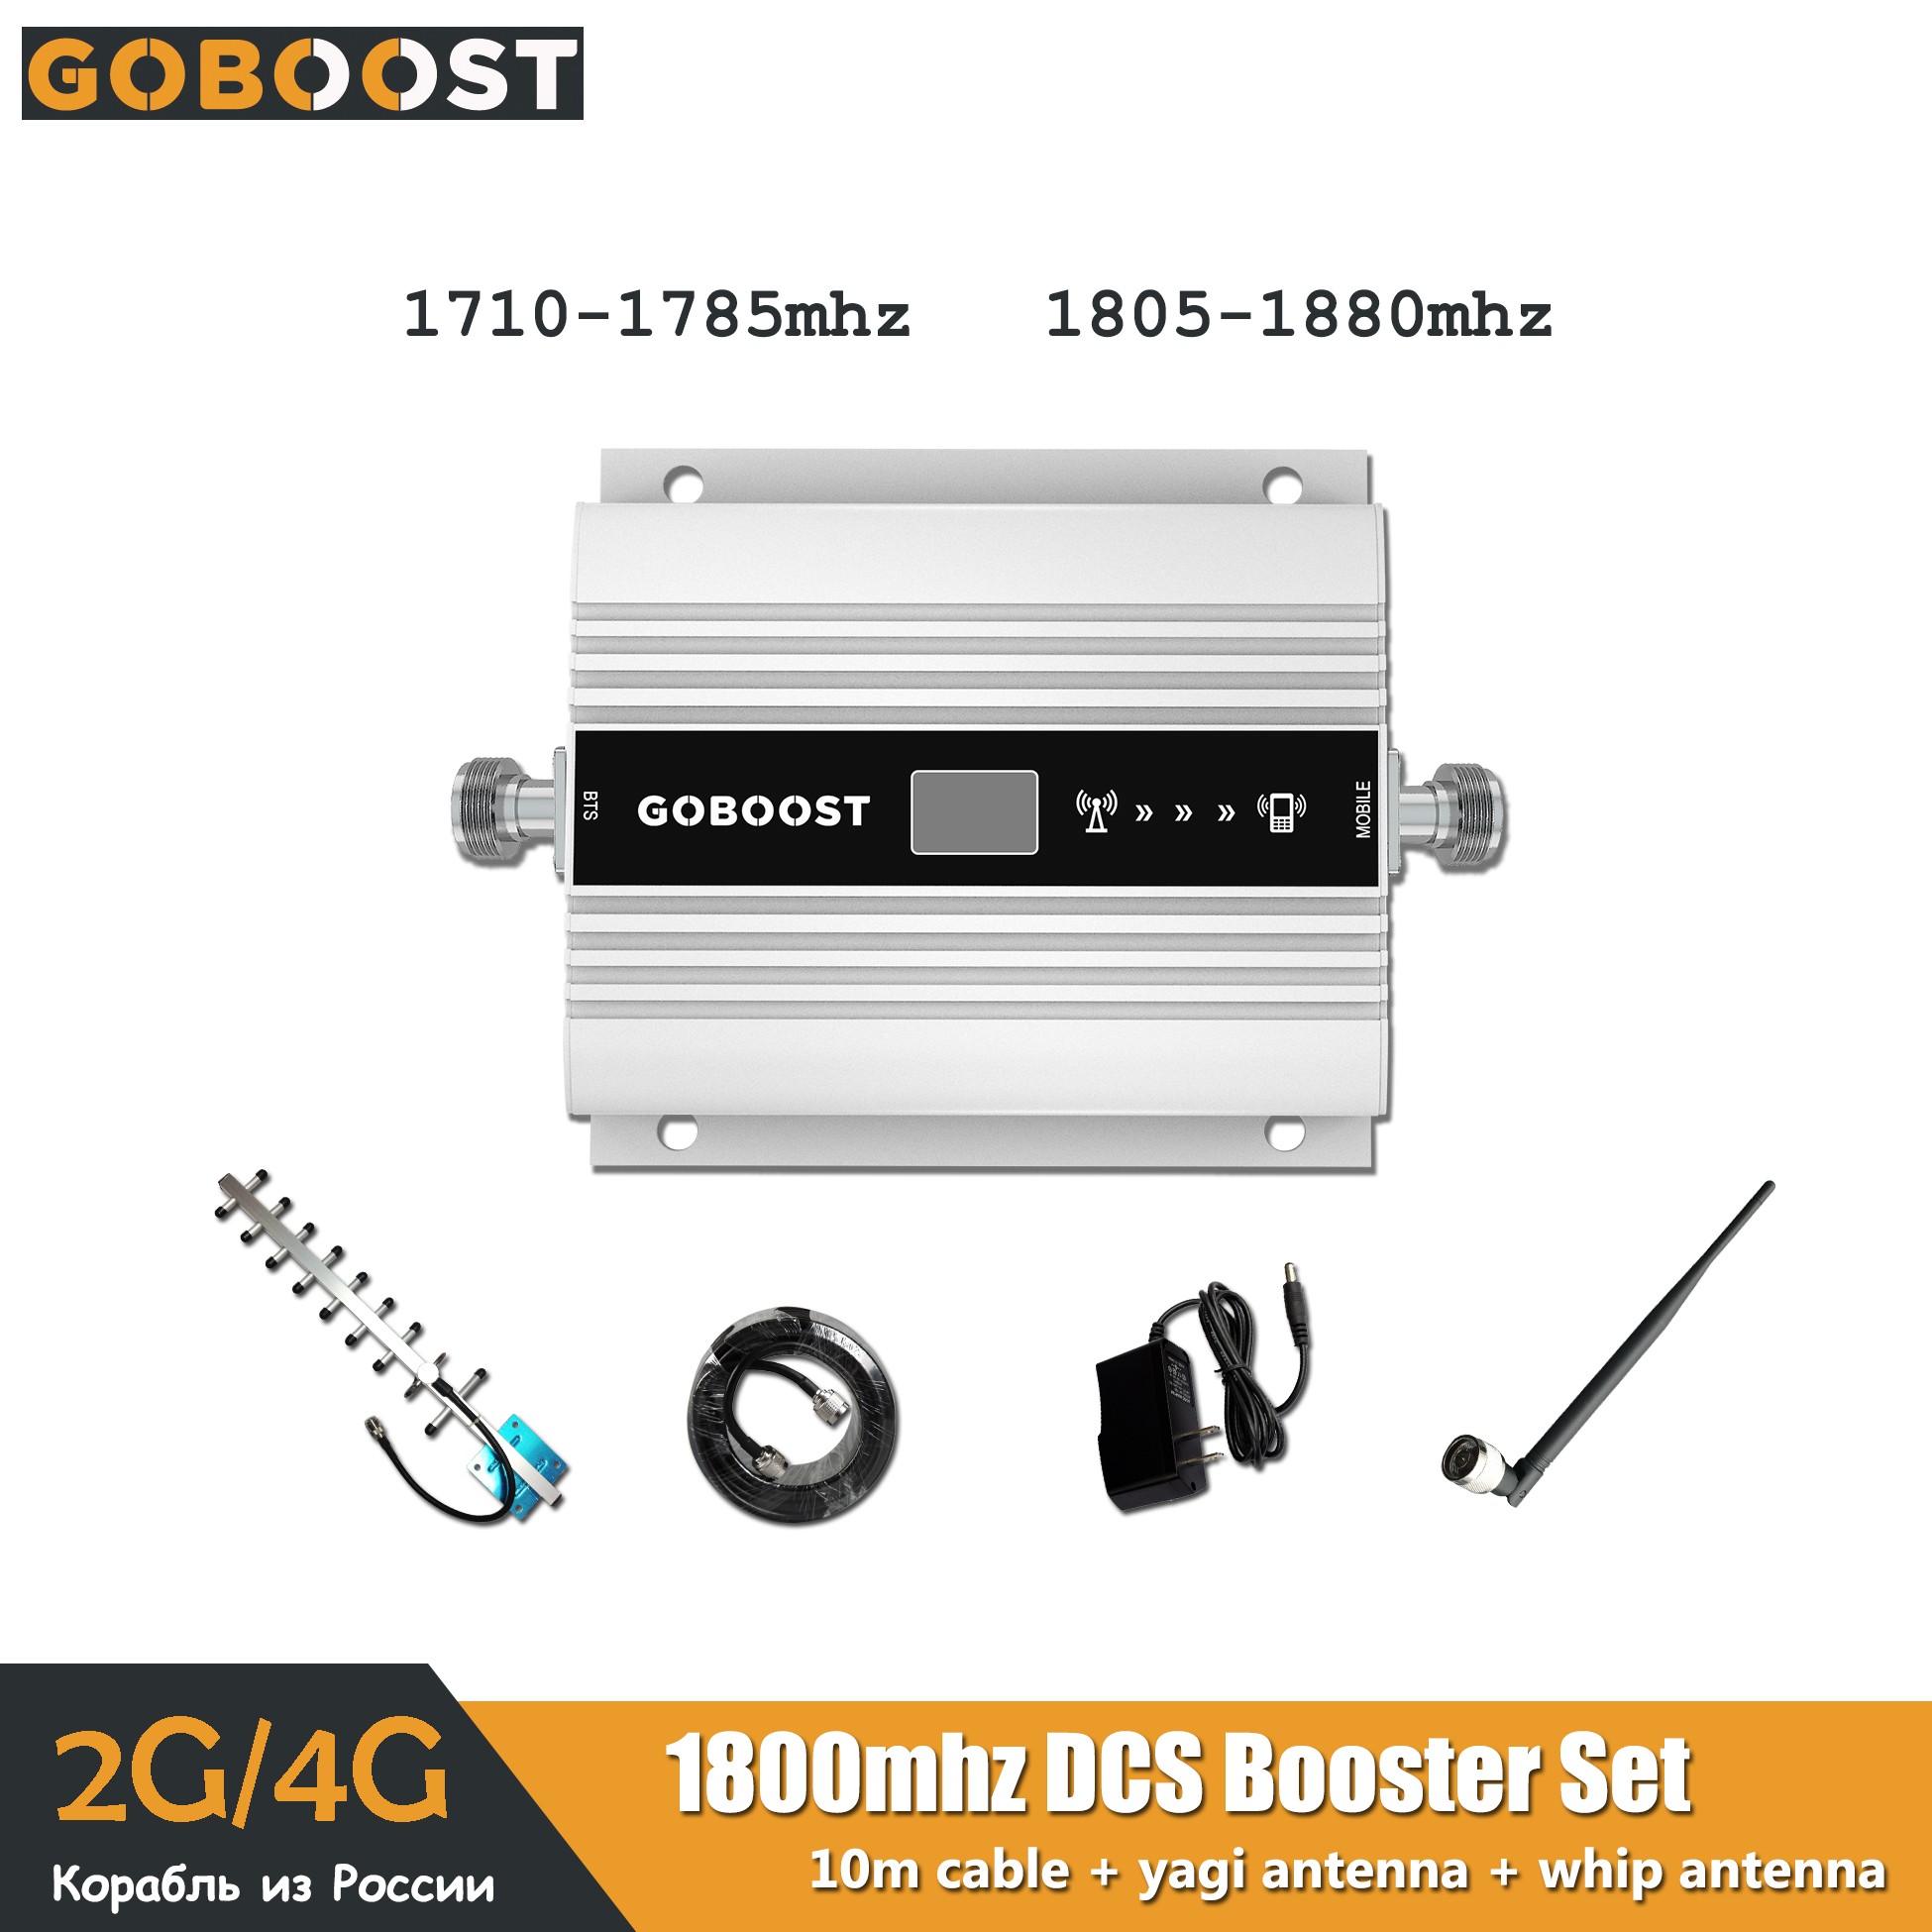 2G 4G DCS LTE 1800mhz Mini Cellular Mobile Signal Booster Repeater Amplifier LCD Display Network Whip+Yagi Antenna 10m Wire 60dB